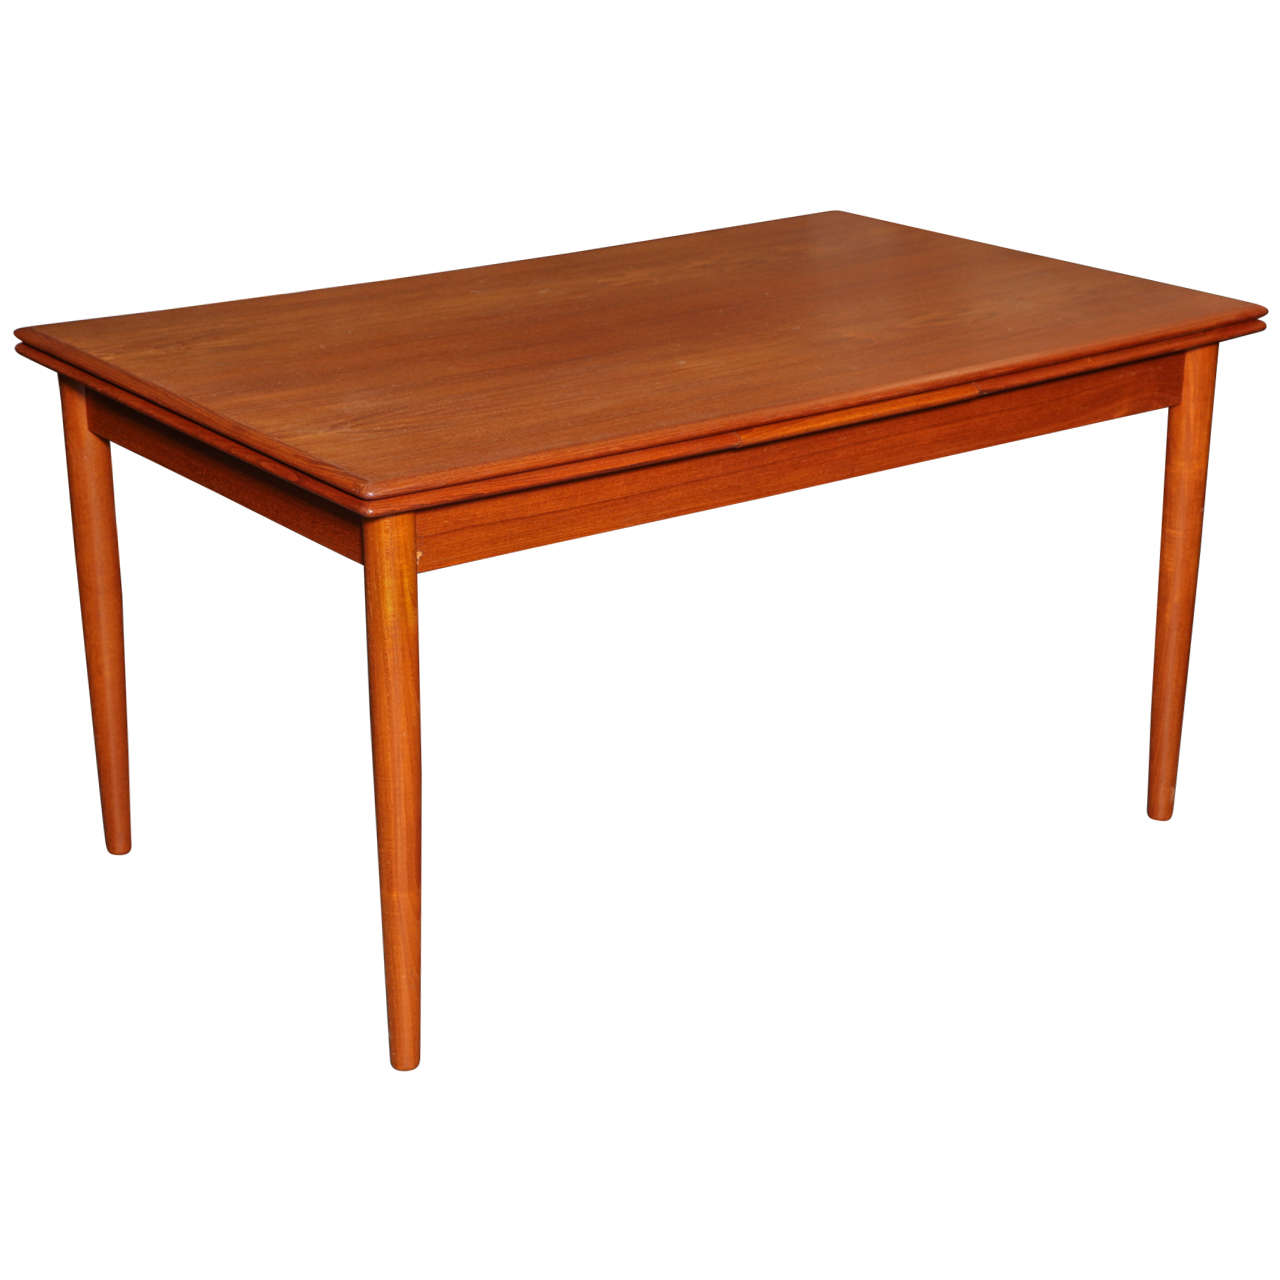 Danish modern dining table in teak expandable at 1stdibs for Most beautiful dining room tables